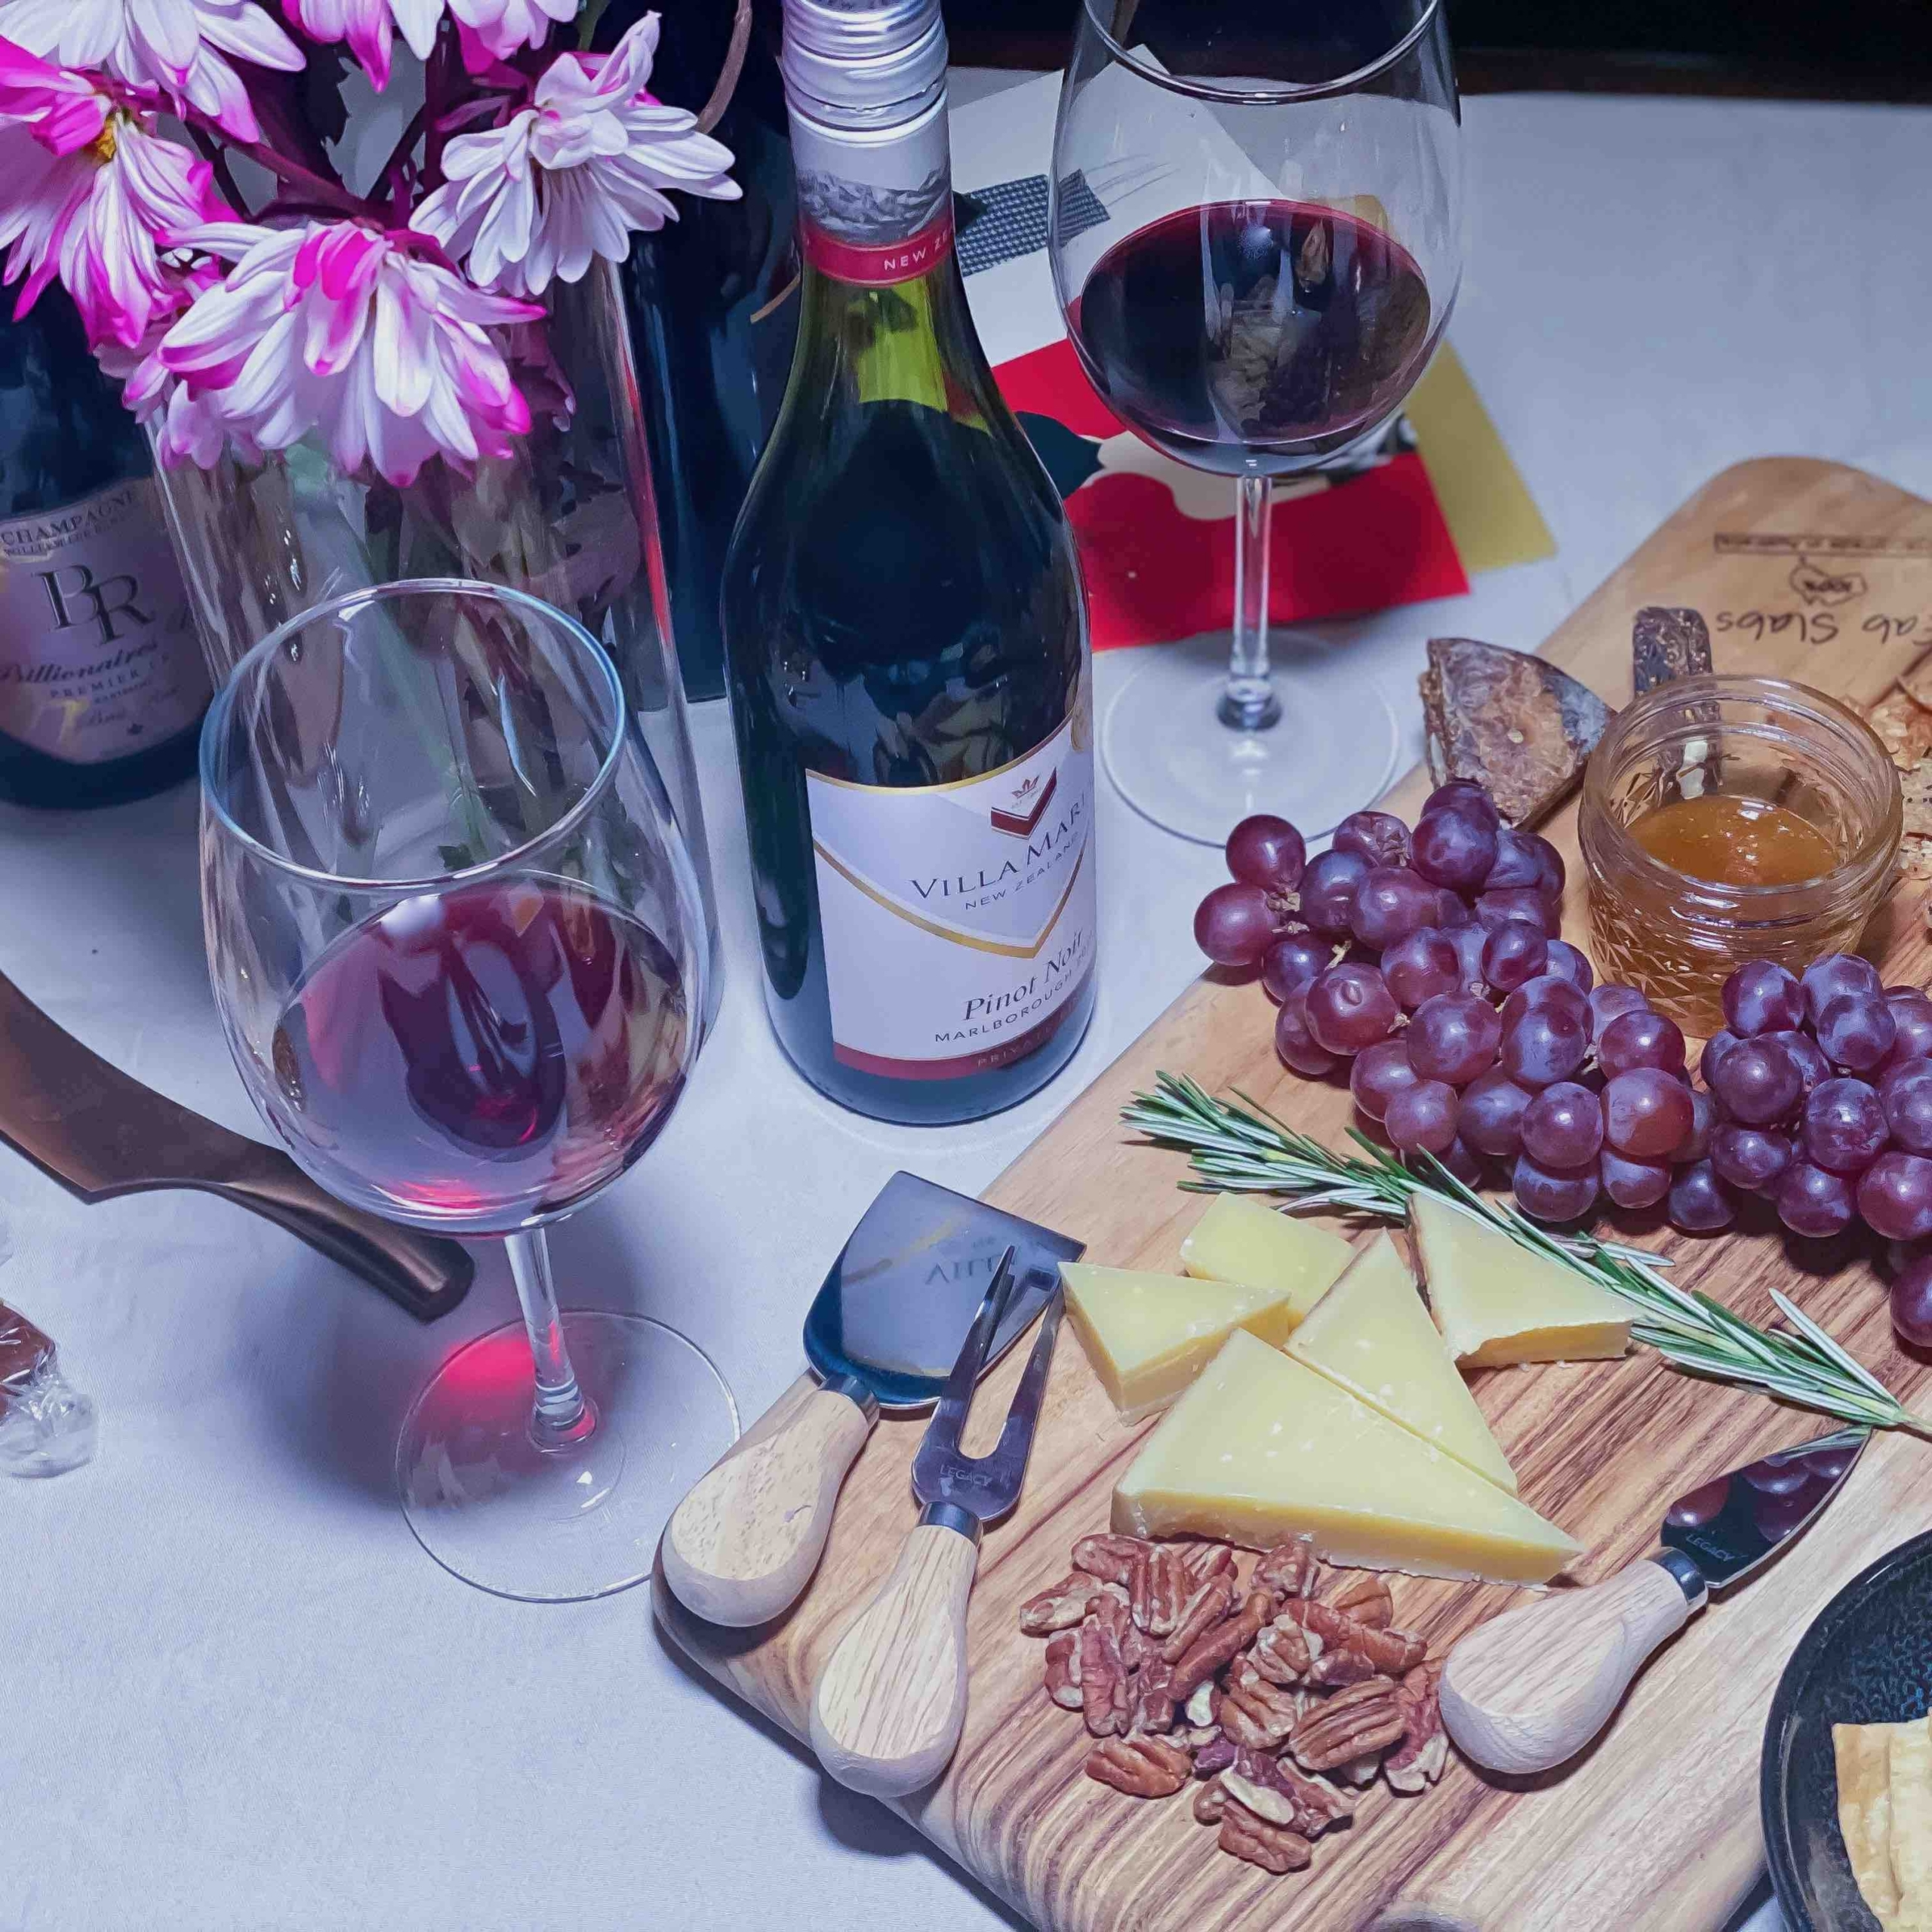 Villa Maria Made Our Picks Of The Best Wine Gifts For Mother's Day